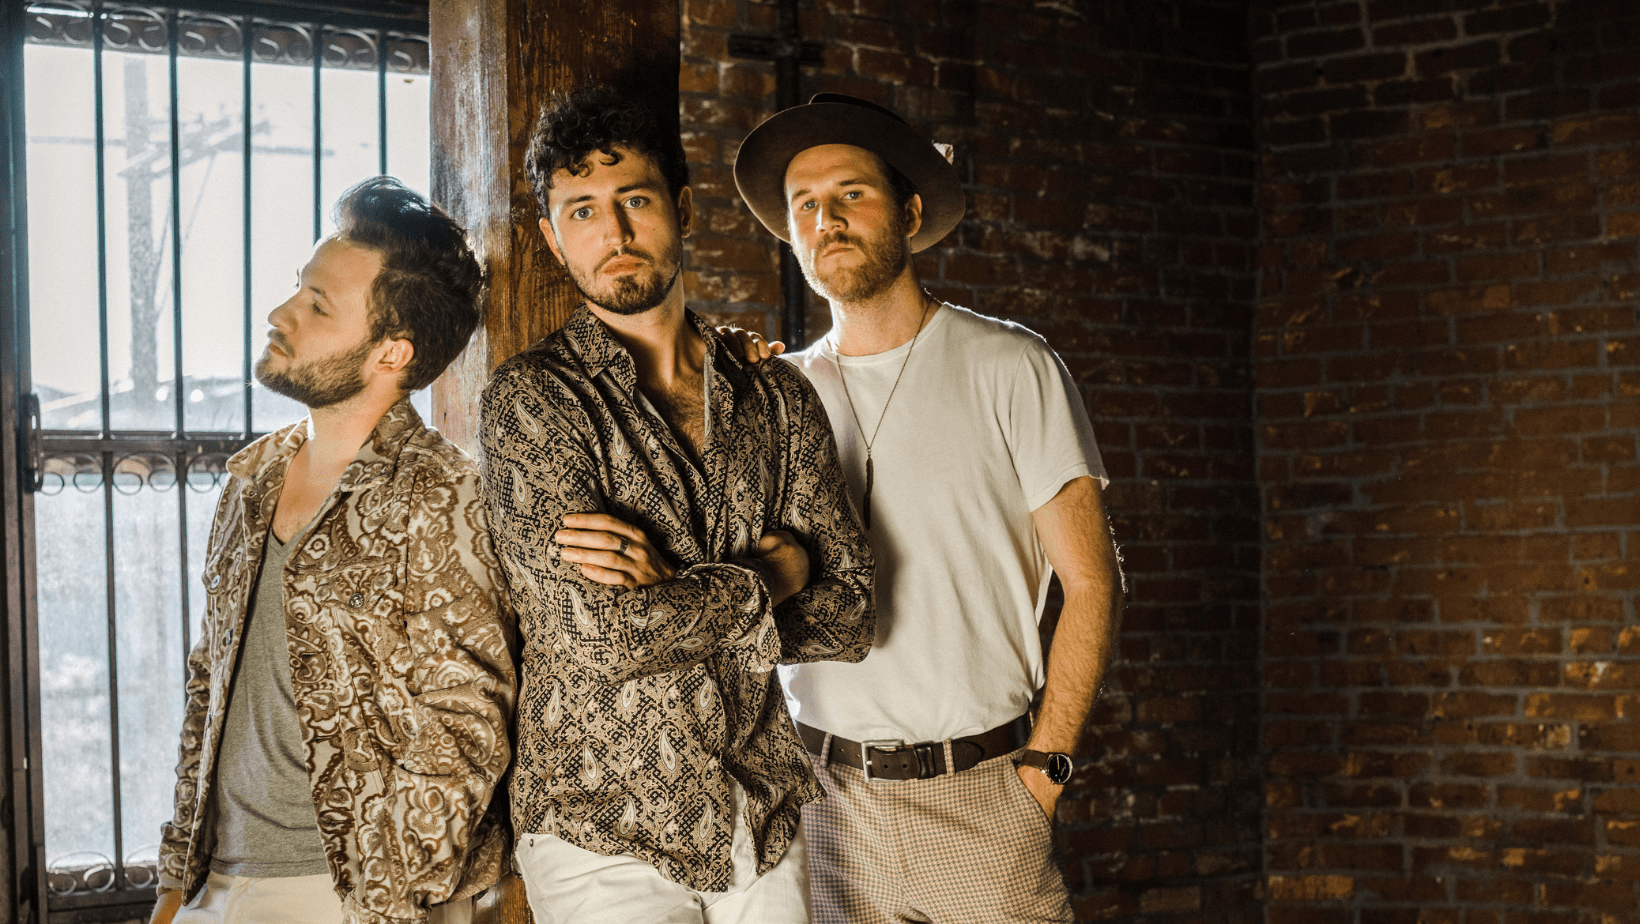 Raynes is an British-American trio and have released a new album 'Set Fire to the Foxes', a mini-album that balances themes of distance, confusion and despair